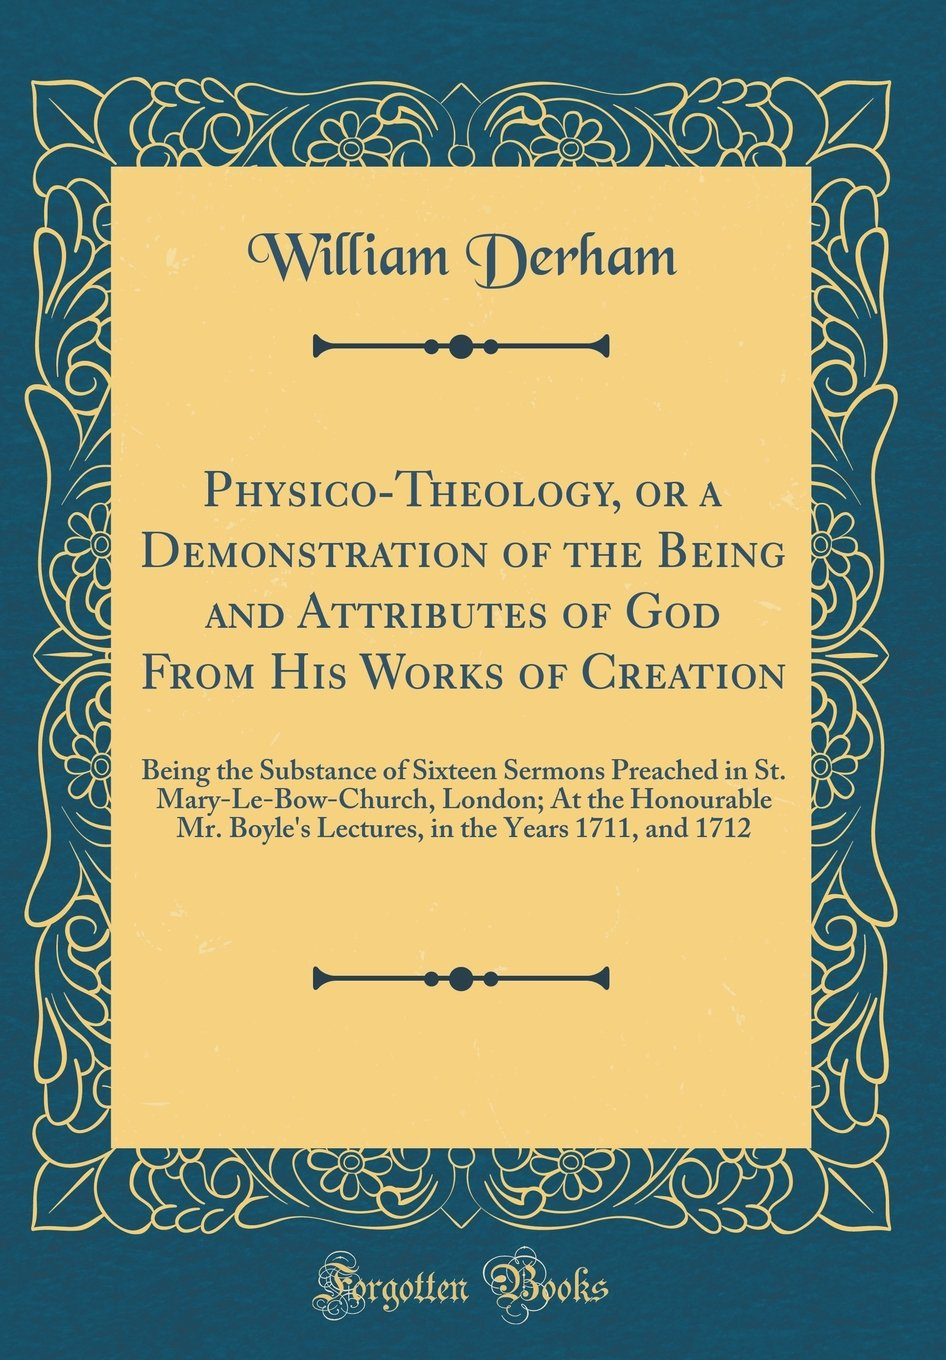 Read Online Physico-Theology, or a Demonstration of the Being and Attributes of God From His Works of Creation: Being the Substance of Sixteen Sermons Preached in ... Boyle's Lectures, in the Years 1711, and 1712 pdf